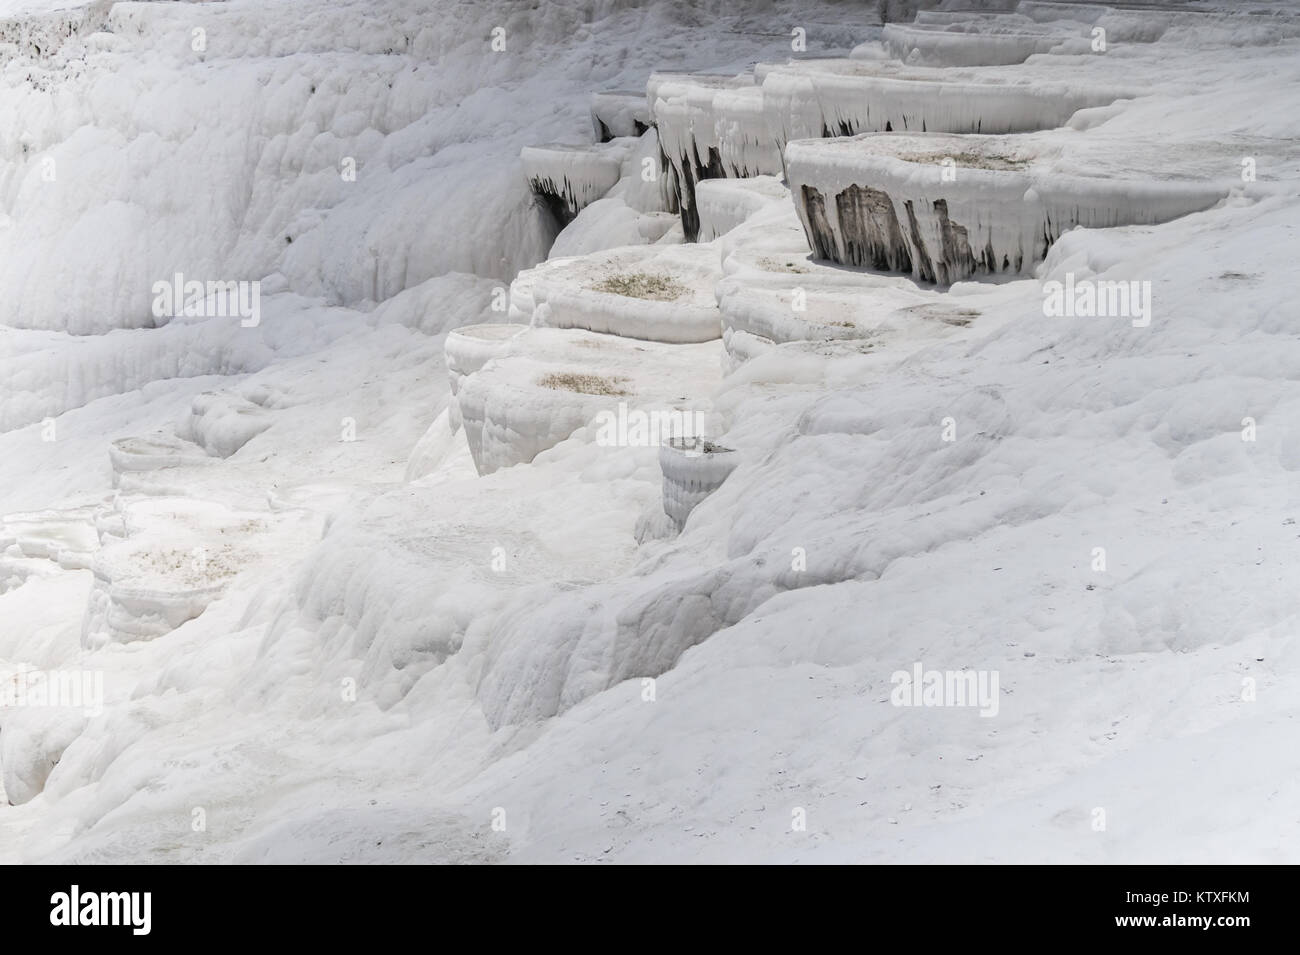 View of the calcareous minerals in Pamukkale - Stock Image